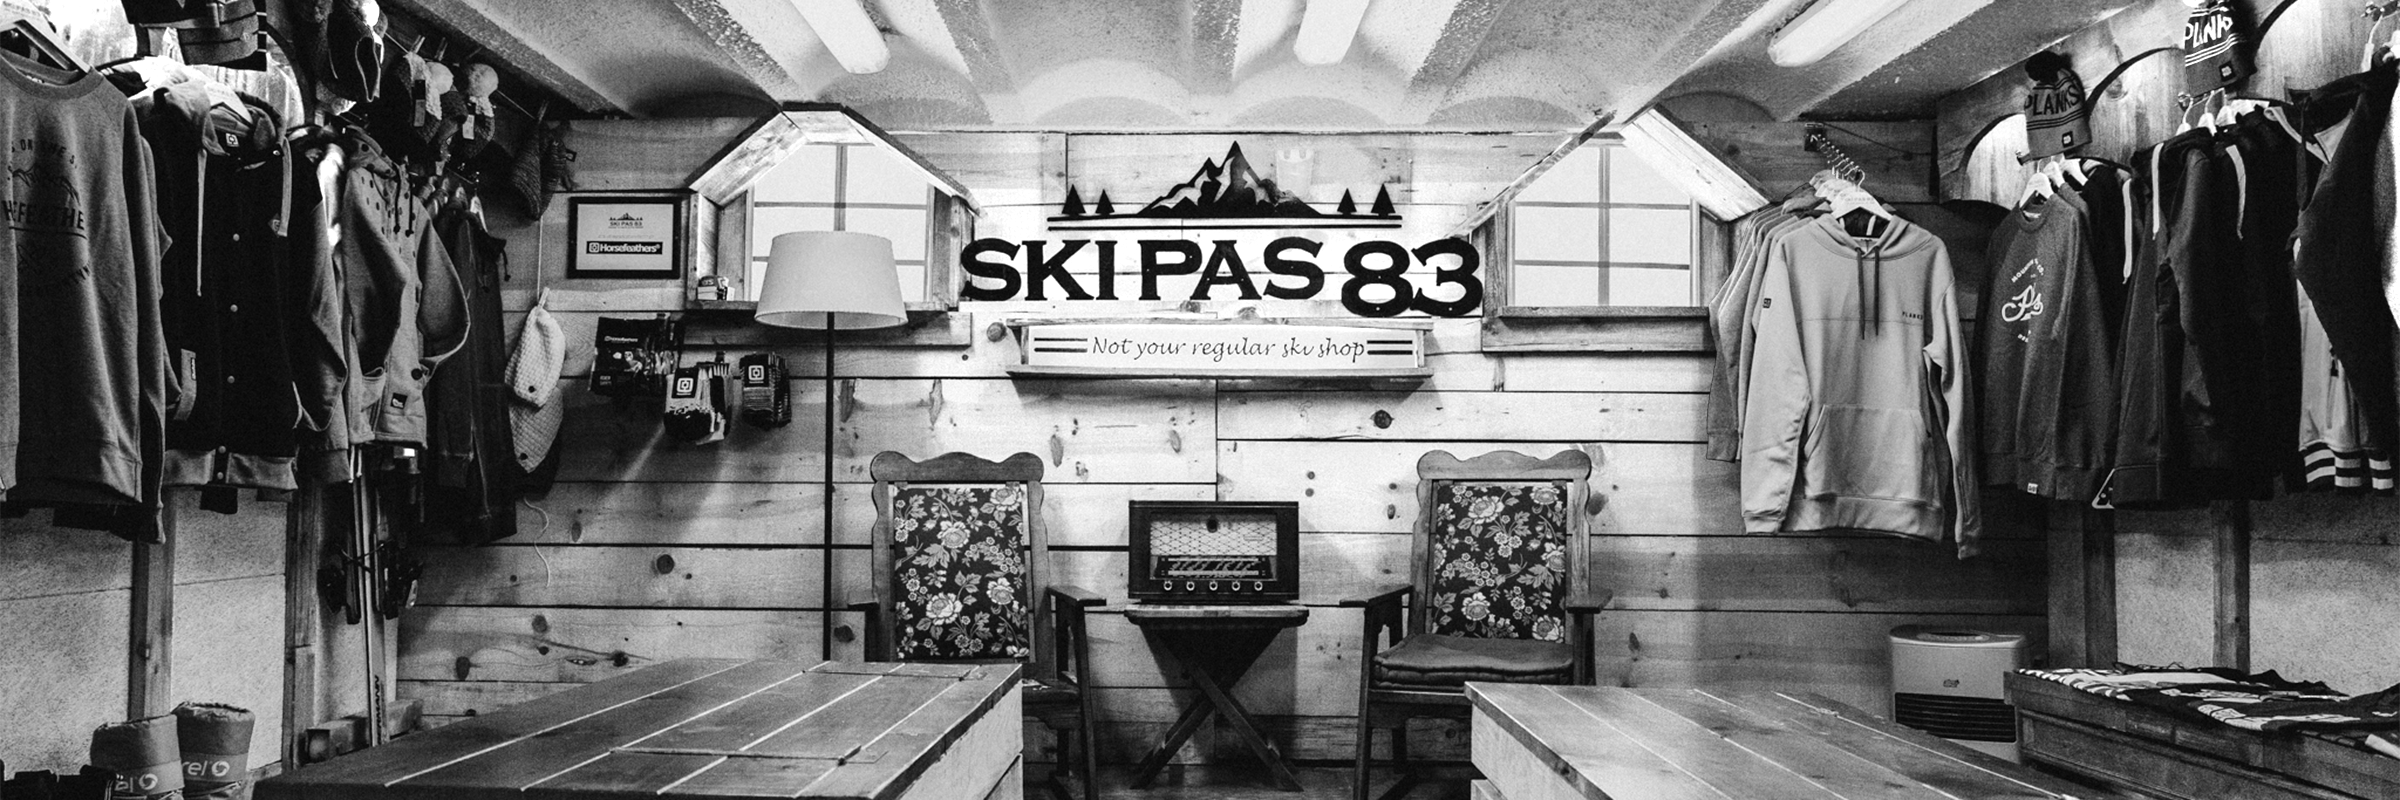 Ski Pas 83 Shop inside